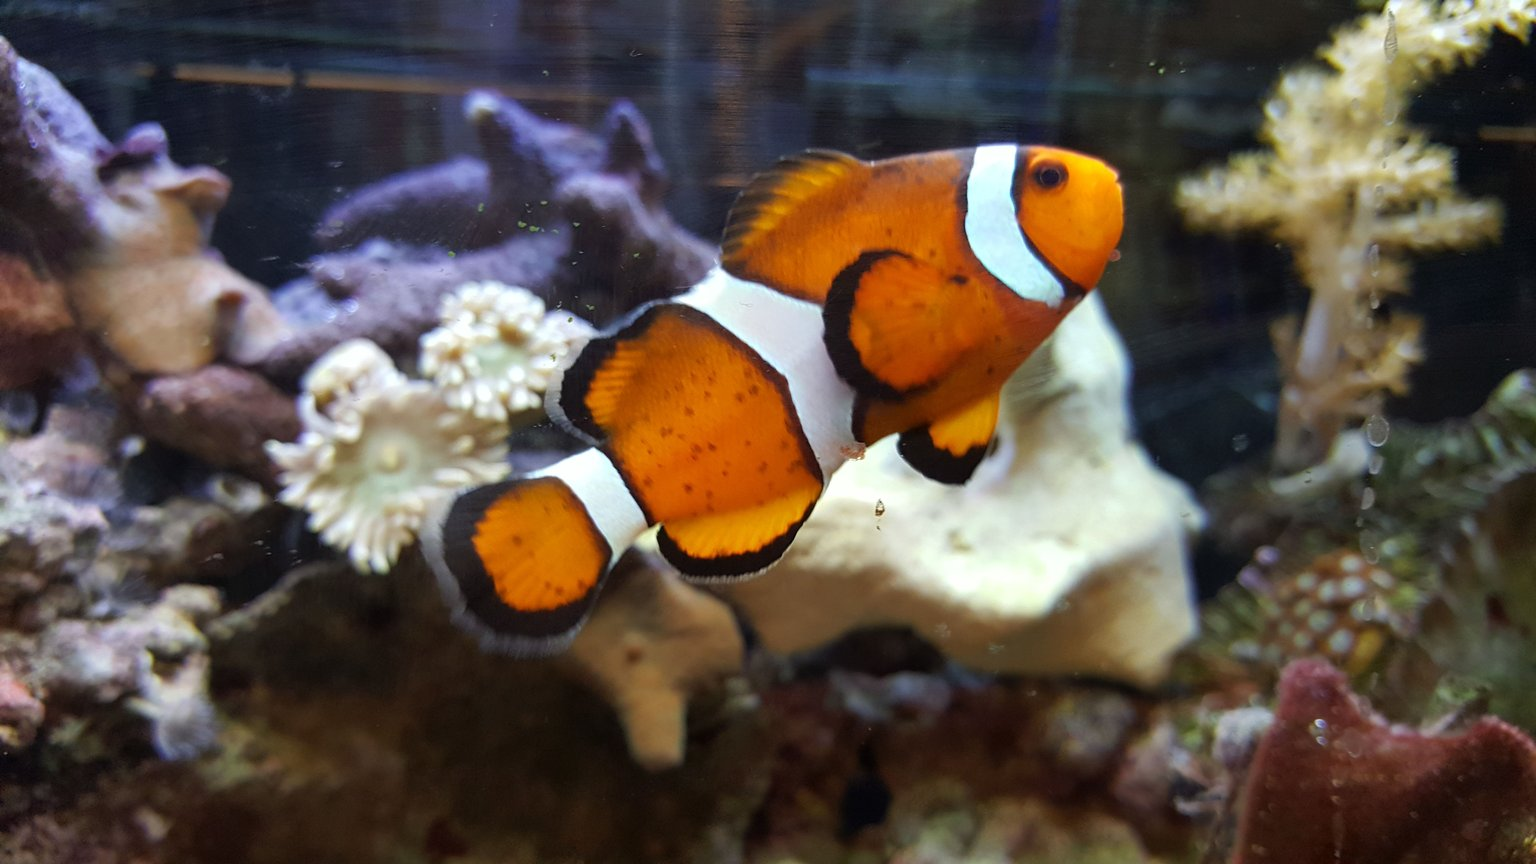 saltwater fish stocking in 80 gallons tank - My clown:)